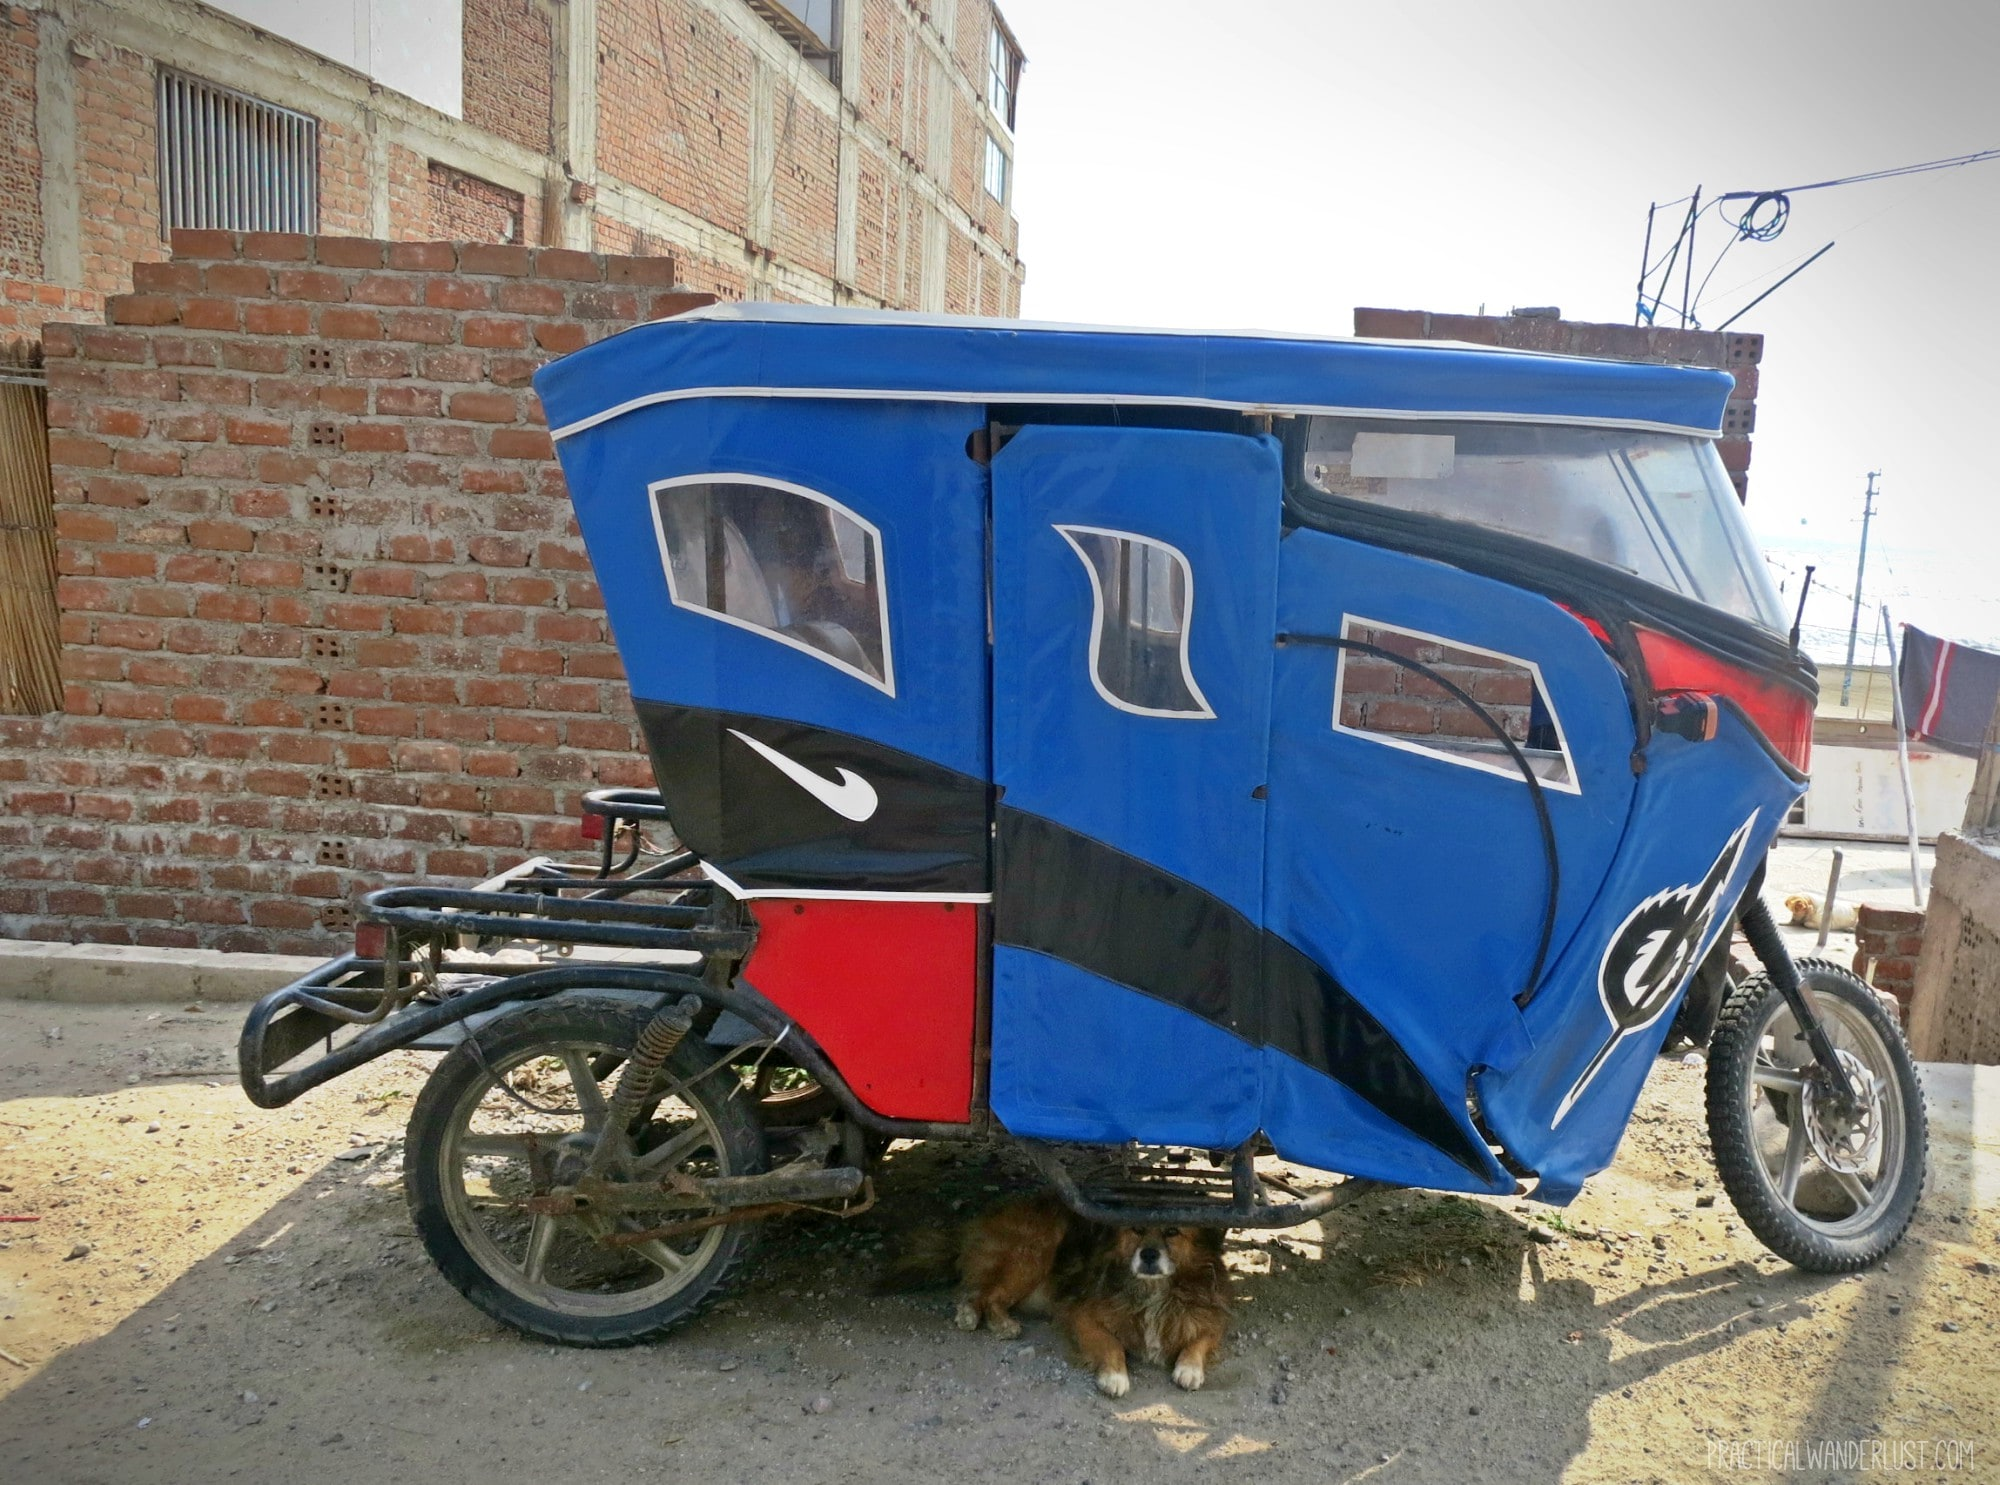 An unfriendly stray dog under a 3-wheeled mototaxi in Huanchacho, Peru. Mean stray dogs and mototaxis were surprises to us when we began backpacking in Peru!